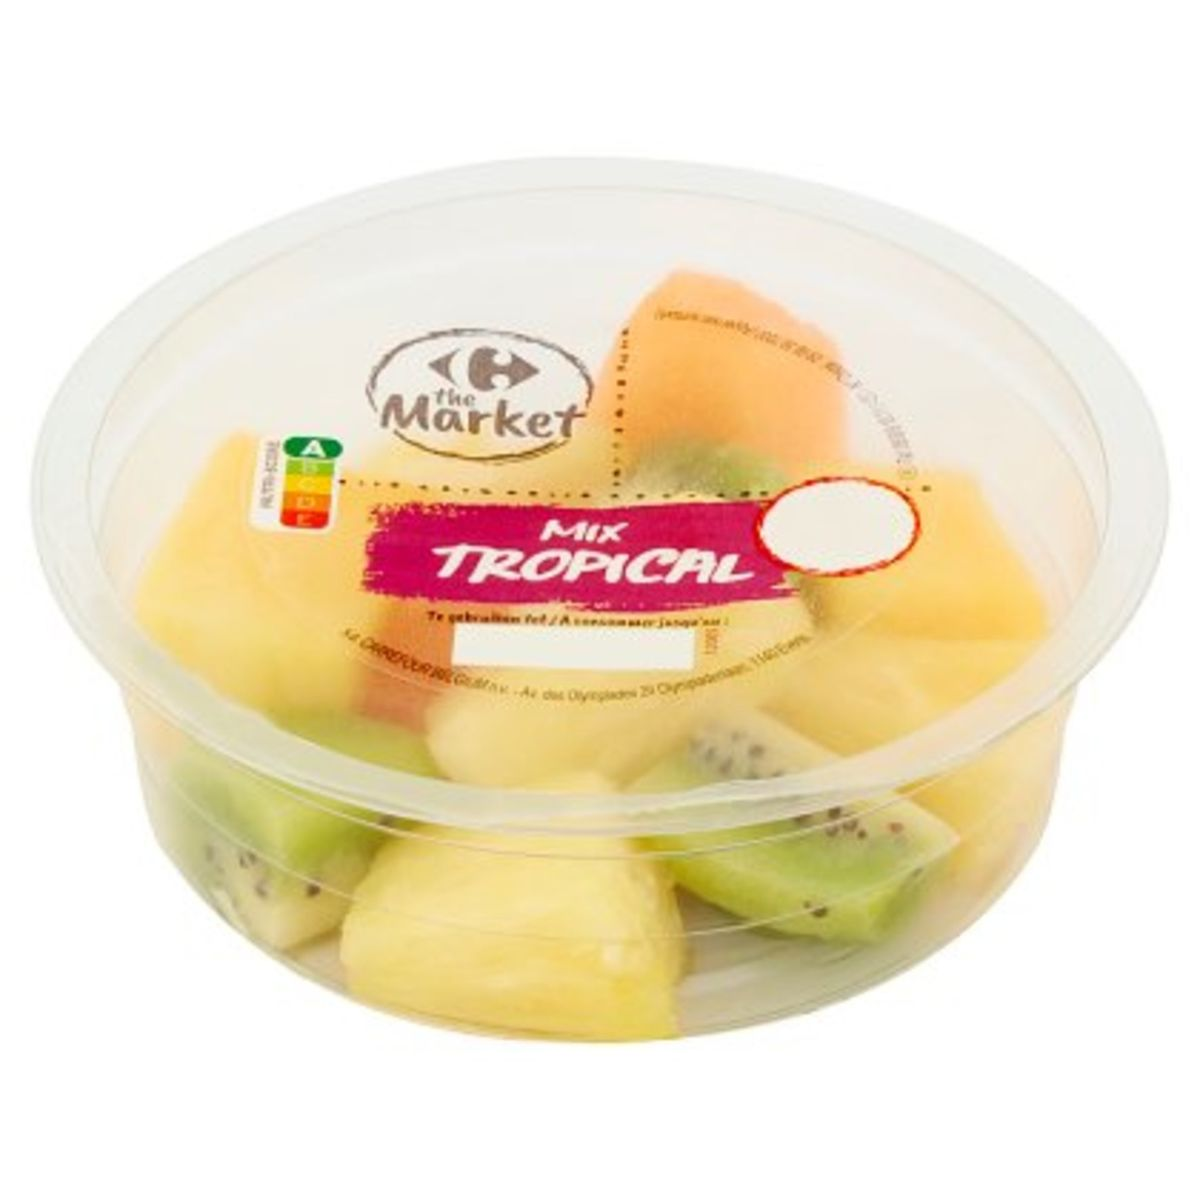 Carrefour The Market Mix Tropical 120 g